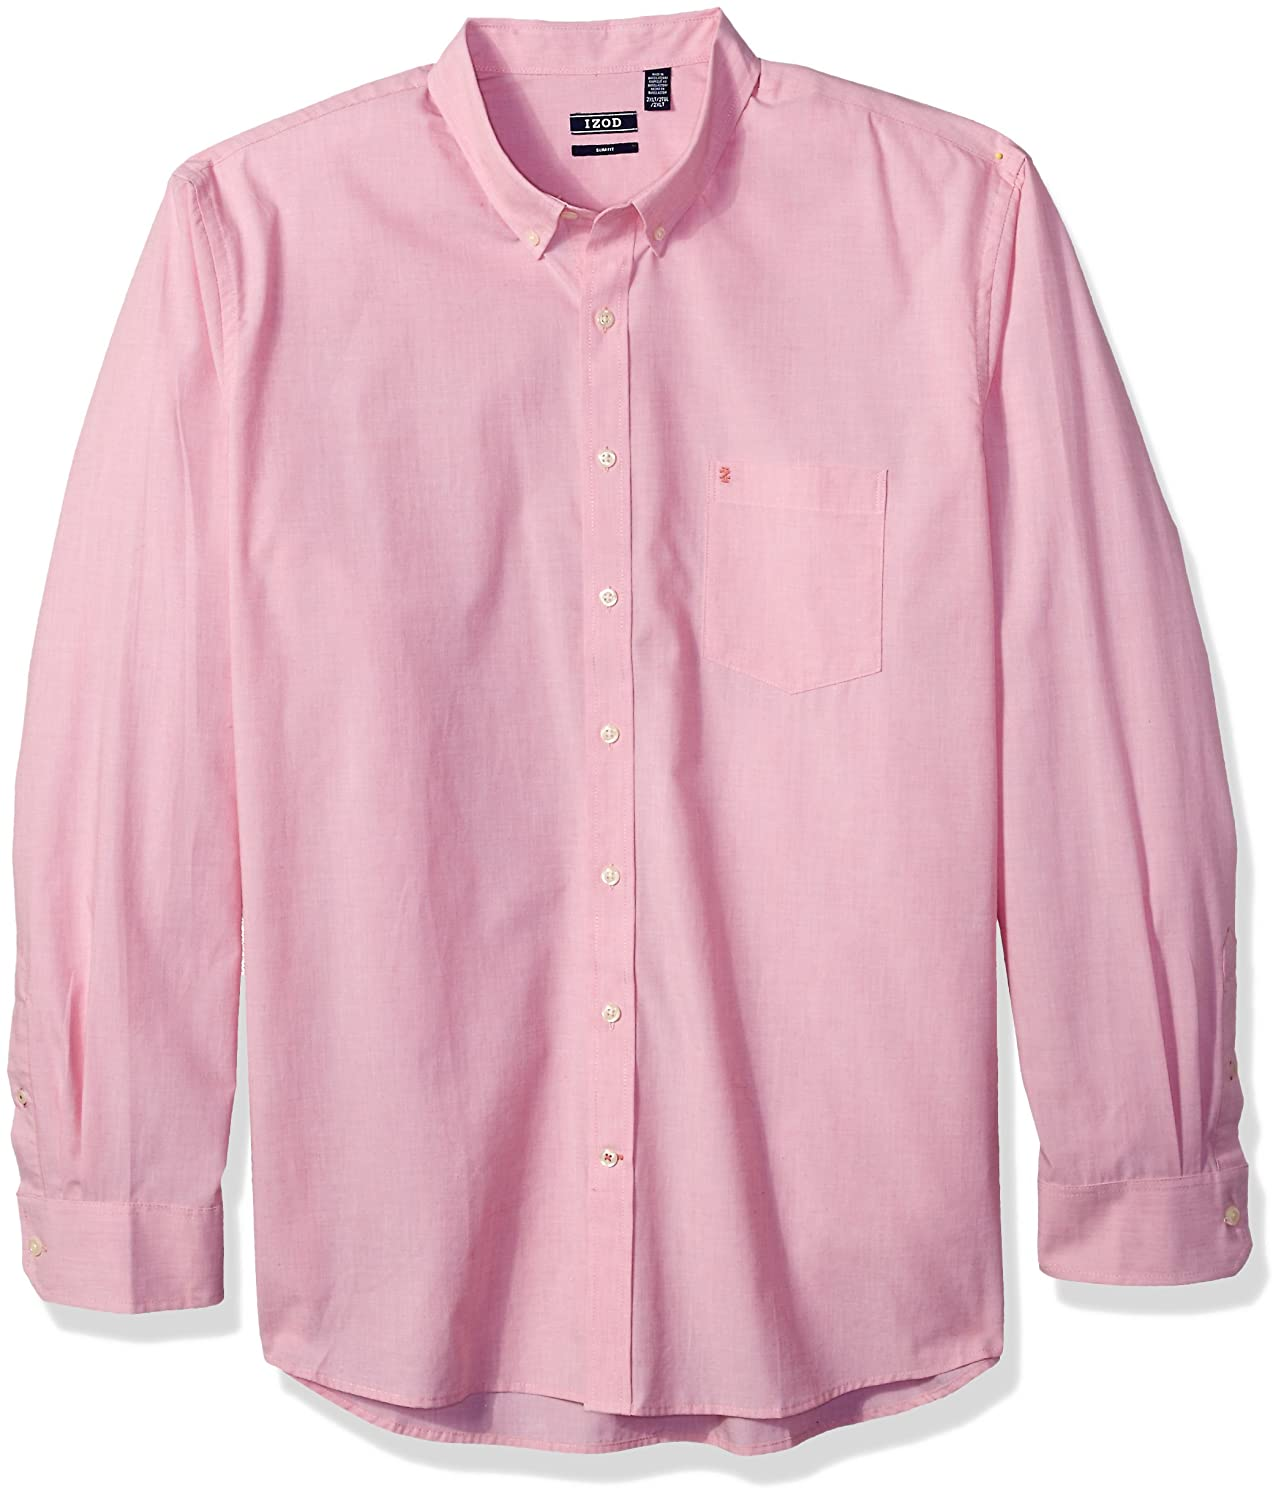 IZOD SHIRT メンズ B01KK6BYJE 2X Tall|Rapture Rose Rapture Rose 2X Tall